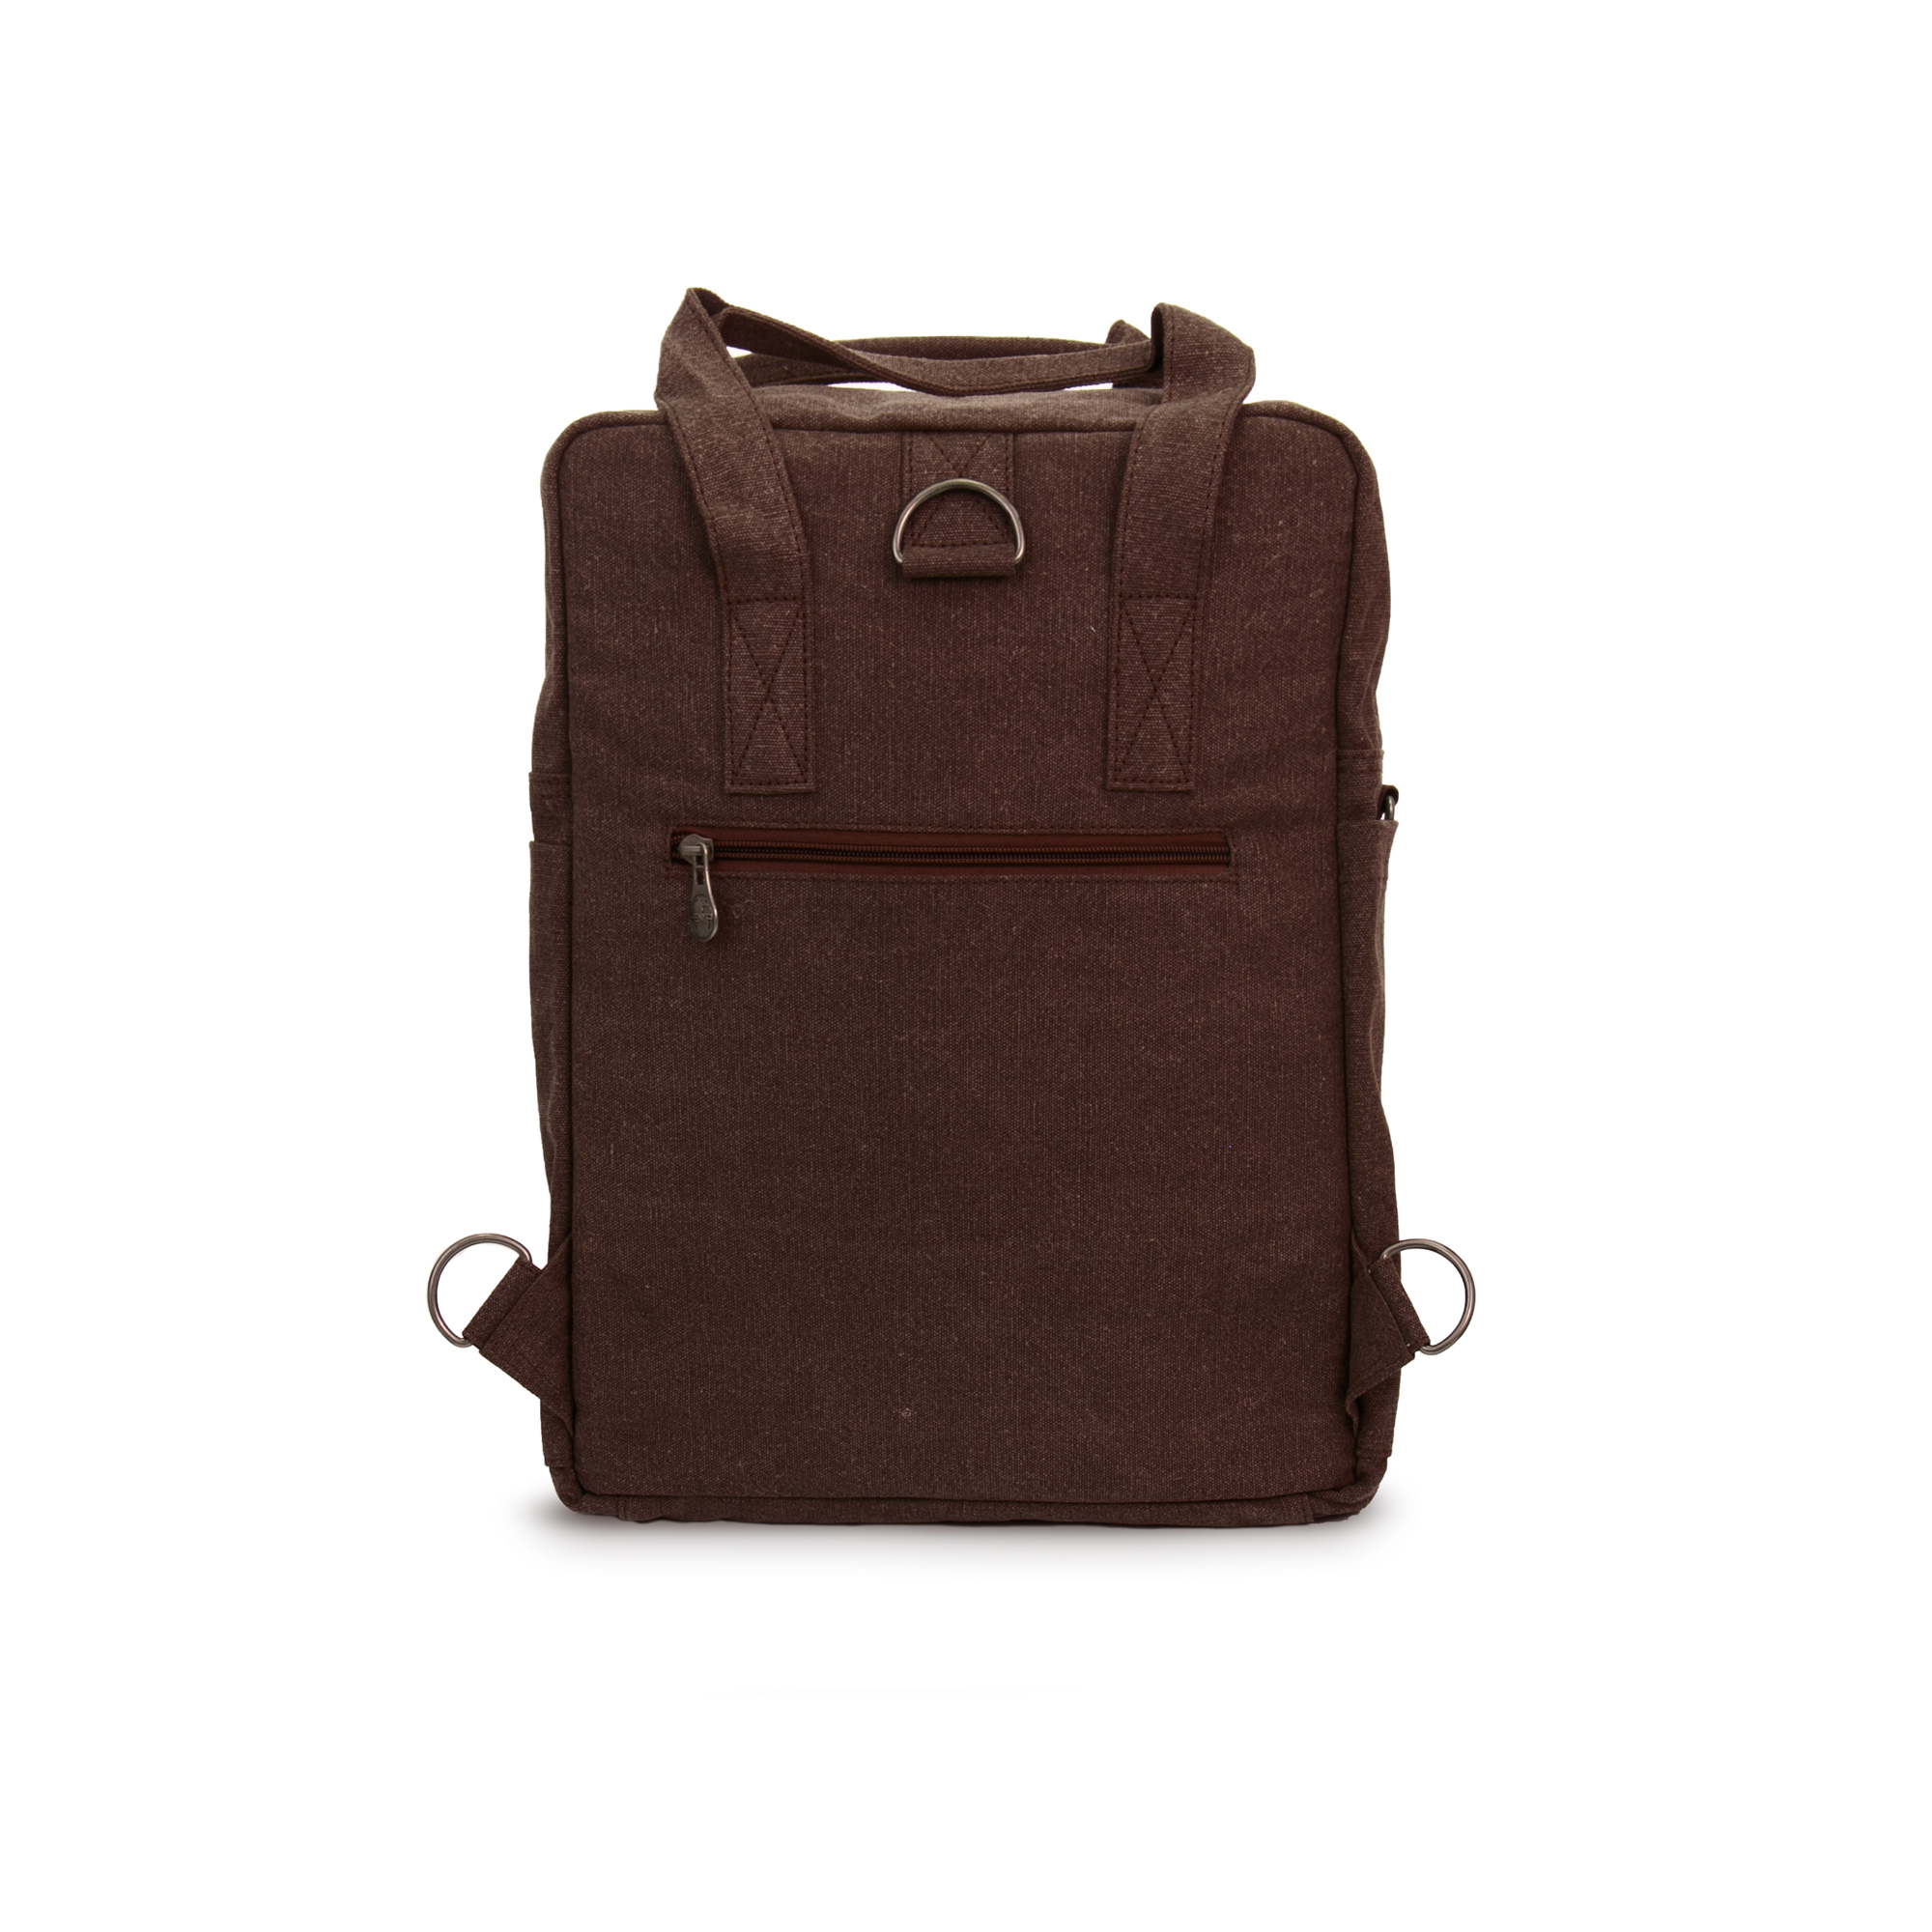 Sativa Hemp Large Rucksack/Carry Bag Brown S10126